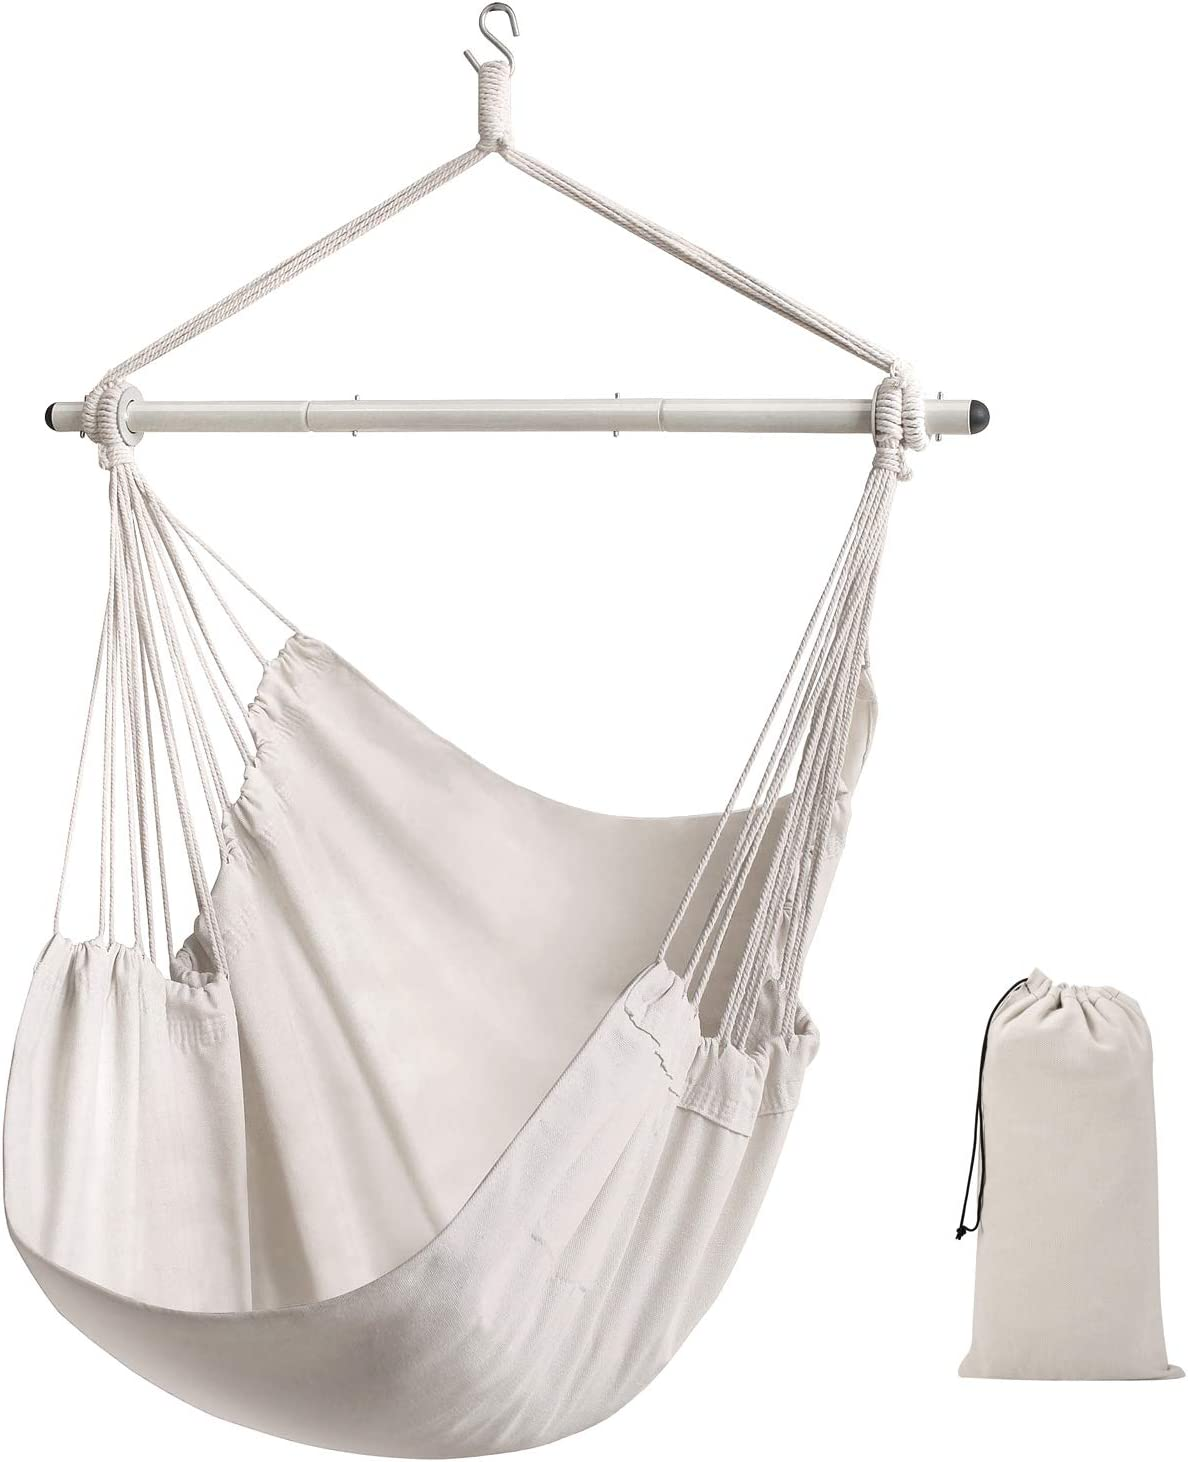 ADVOKAIR Hammock Chair Hanging Swing Chair Large Hanging Chair Soft Comfort Durability: Kitchen & Dining